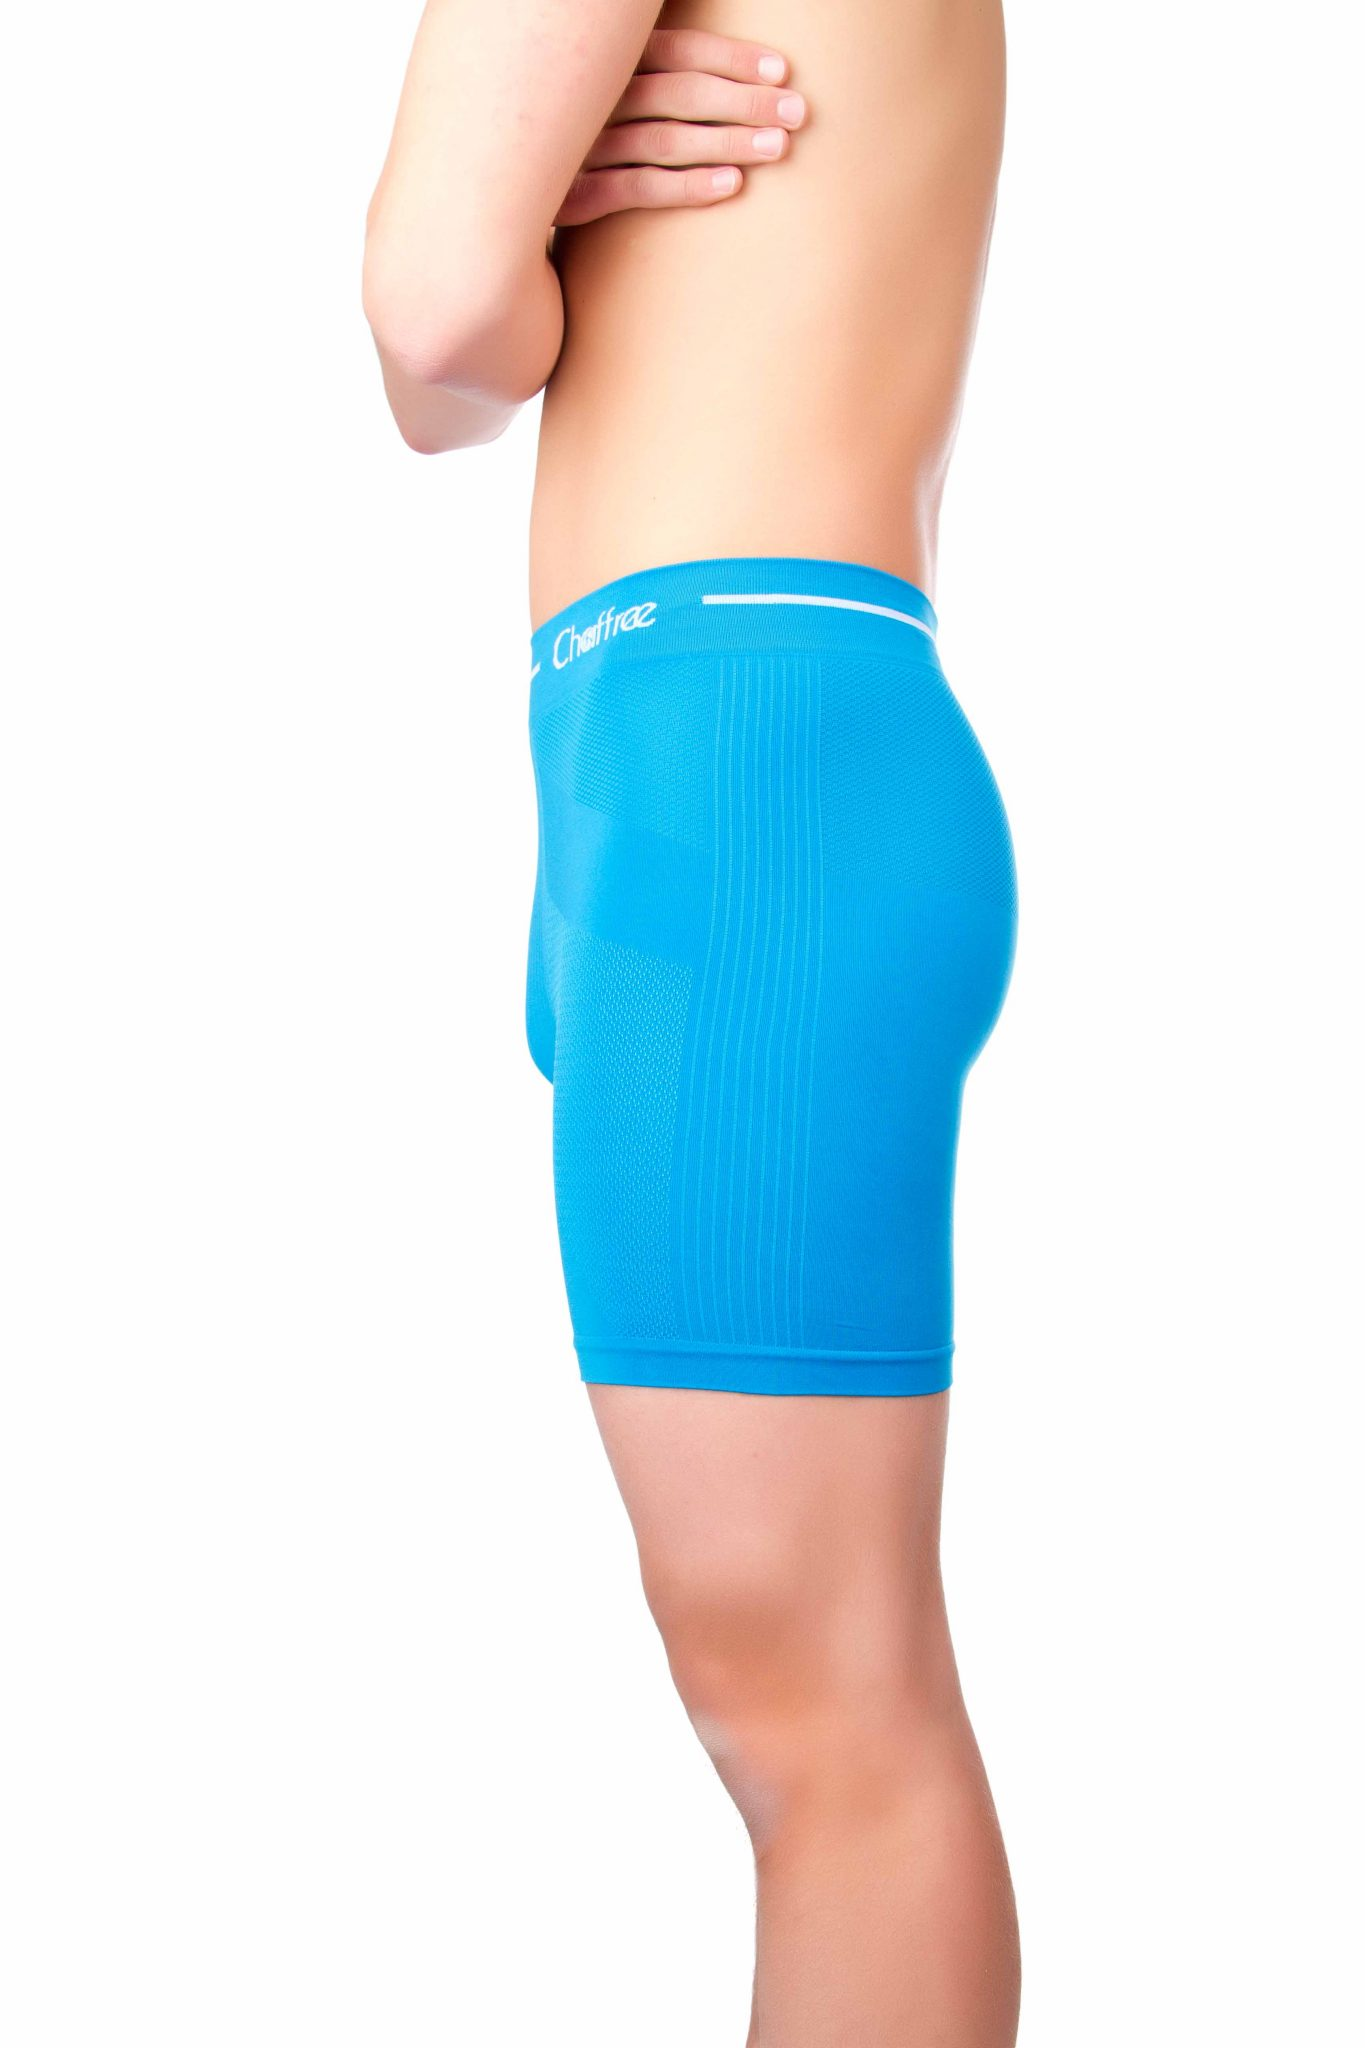 For men looking for silky-soft boxer shorts that also look great, the Perry Ellis Luxe Boxers are a great pick. They also strike that perfect balance between loose and fitted boxers.